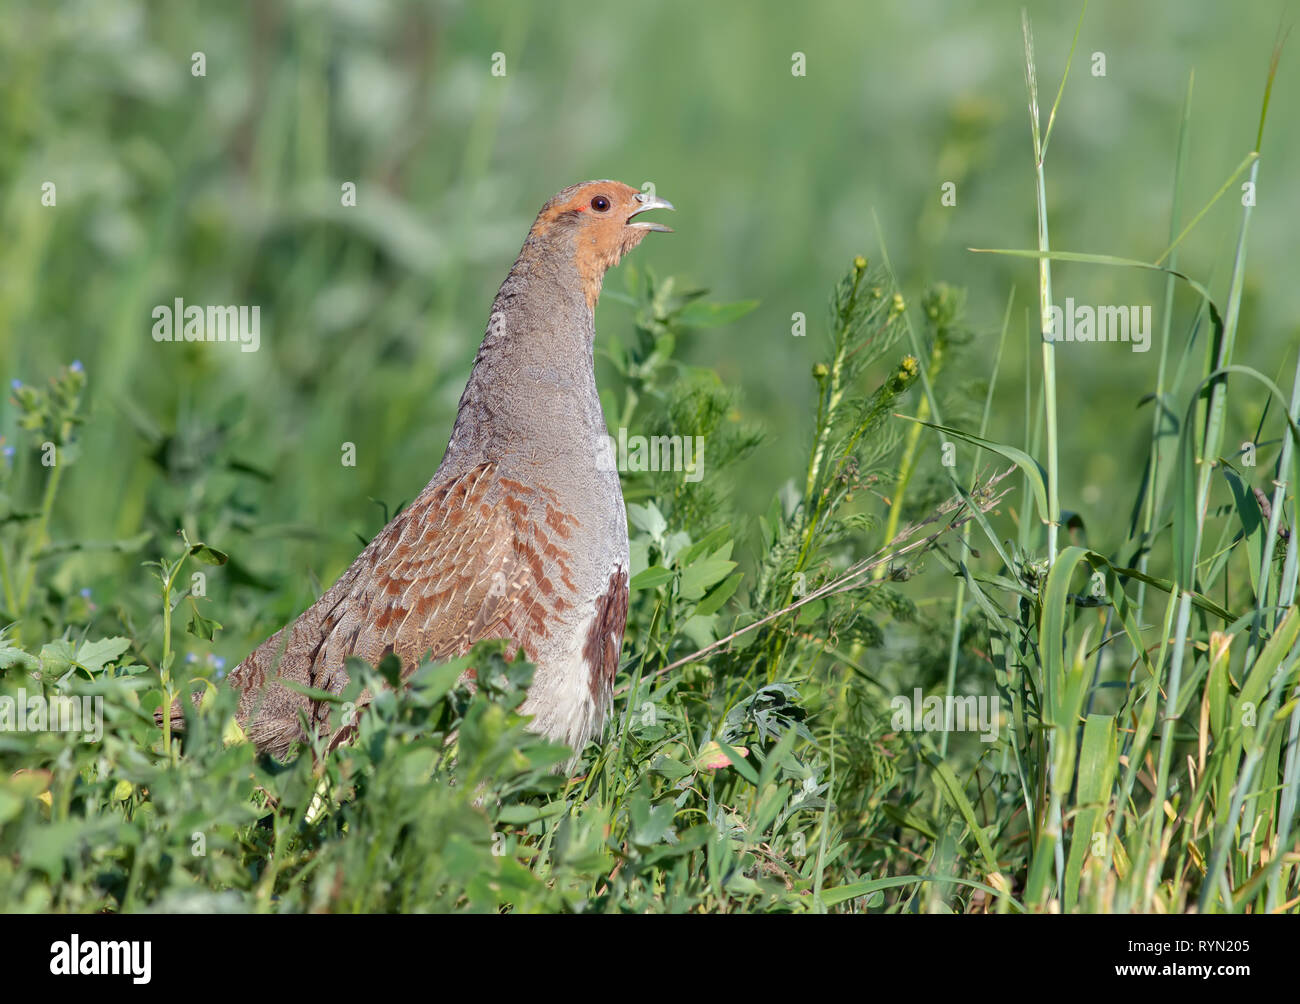 Grey partridge singing loudly in green grass - Stock Image